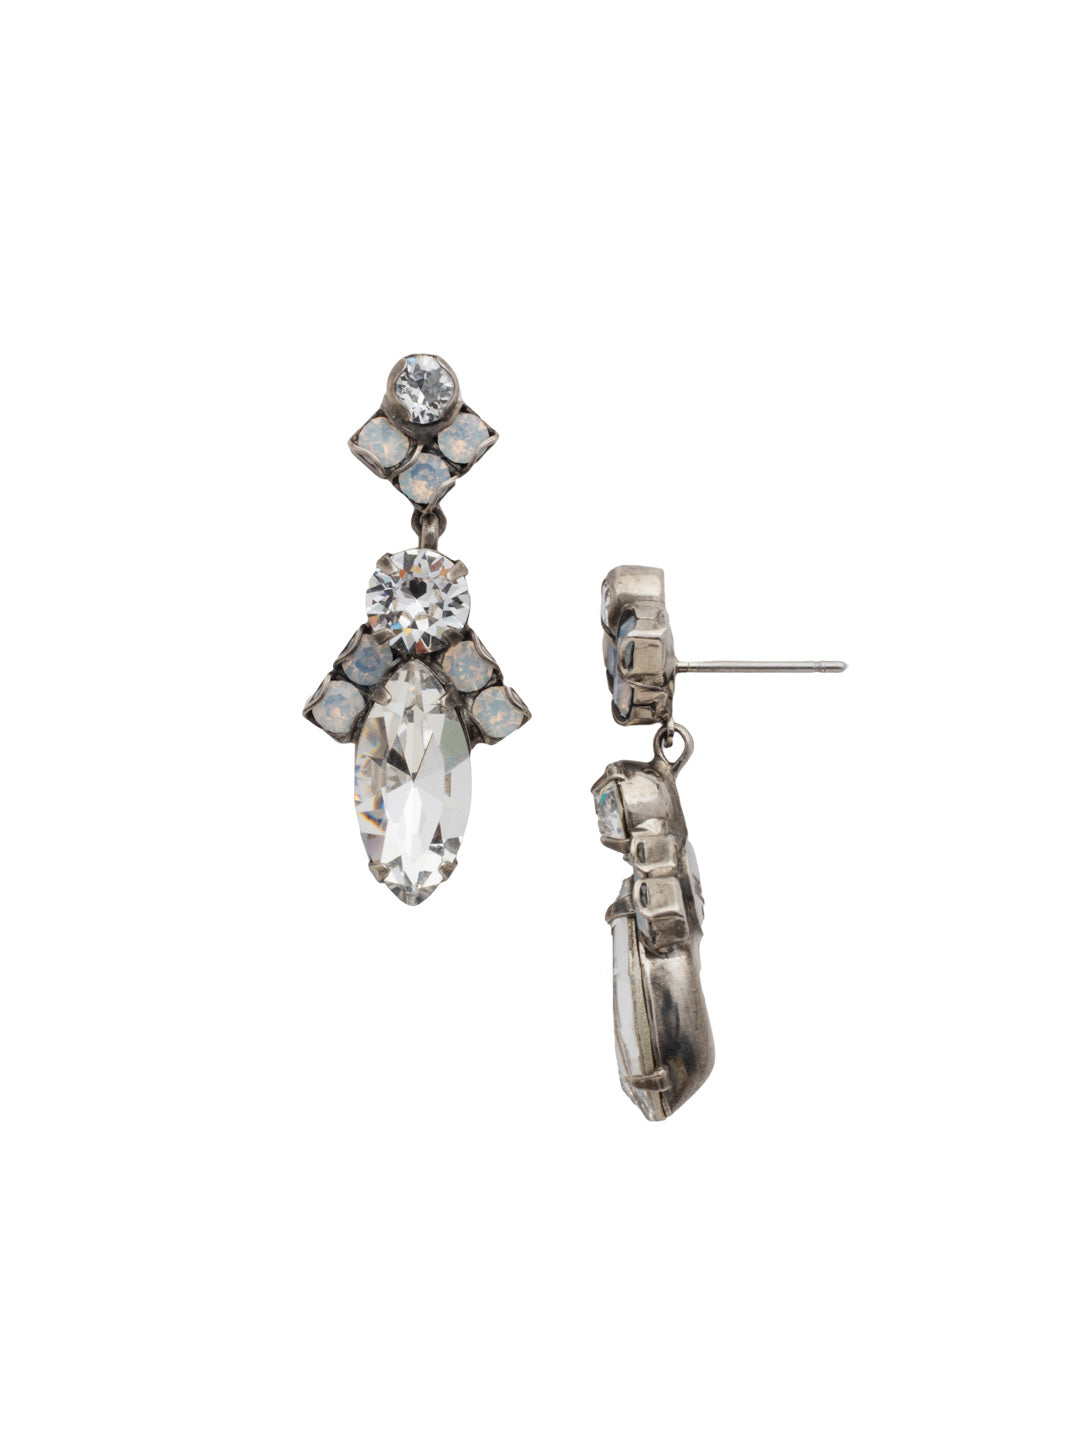 Elegant Navette Dangle Earrings - EDG85ASWBR